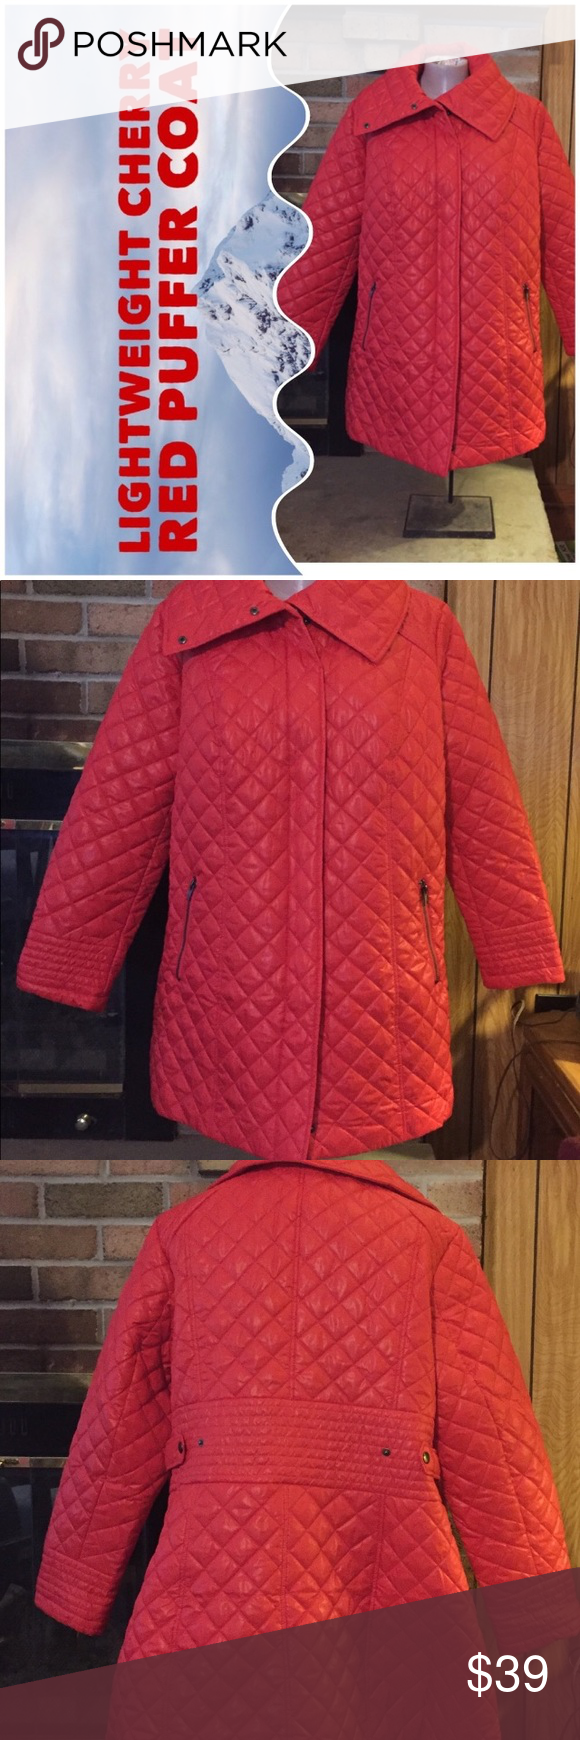 Lightweight Cherry Red Puffer Coat NWT (With images) Red